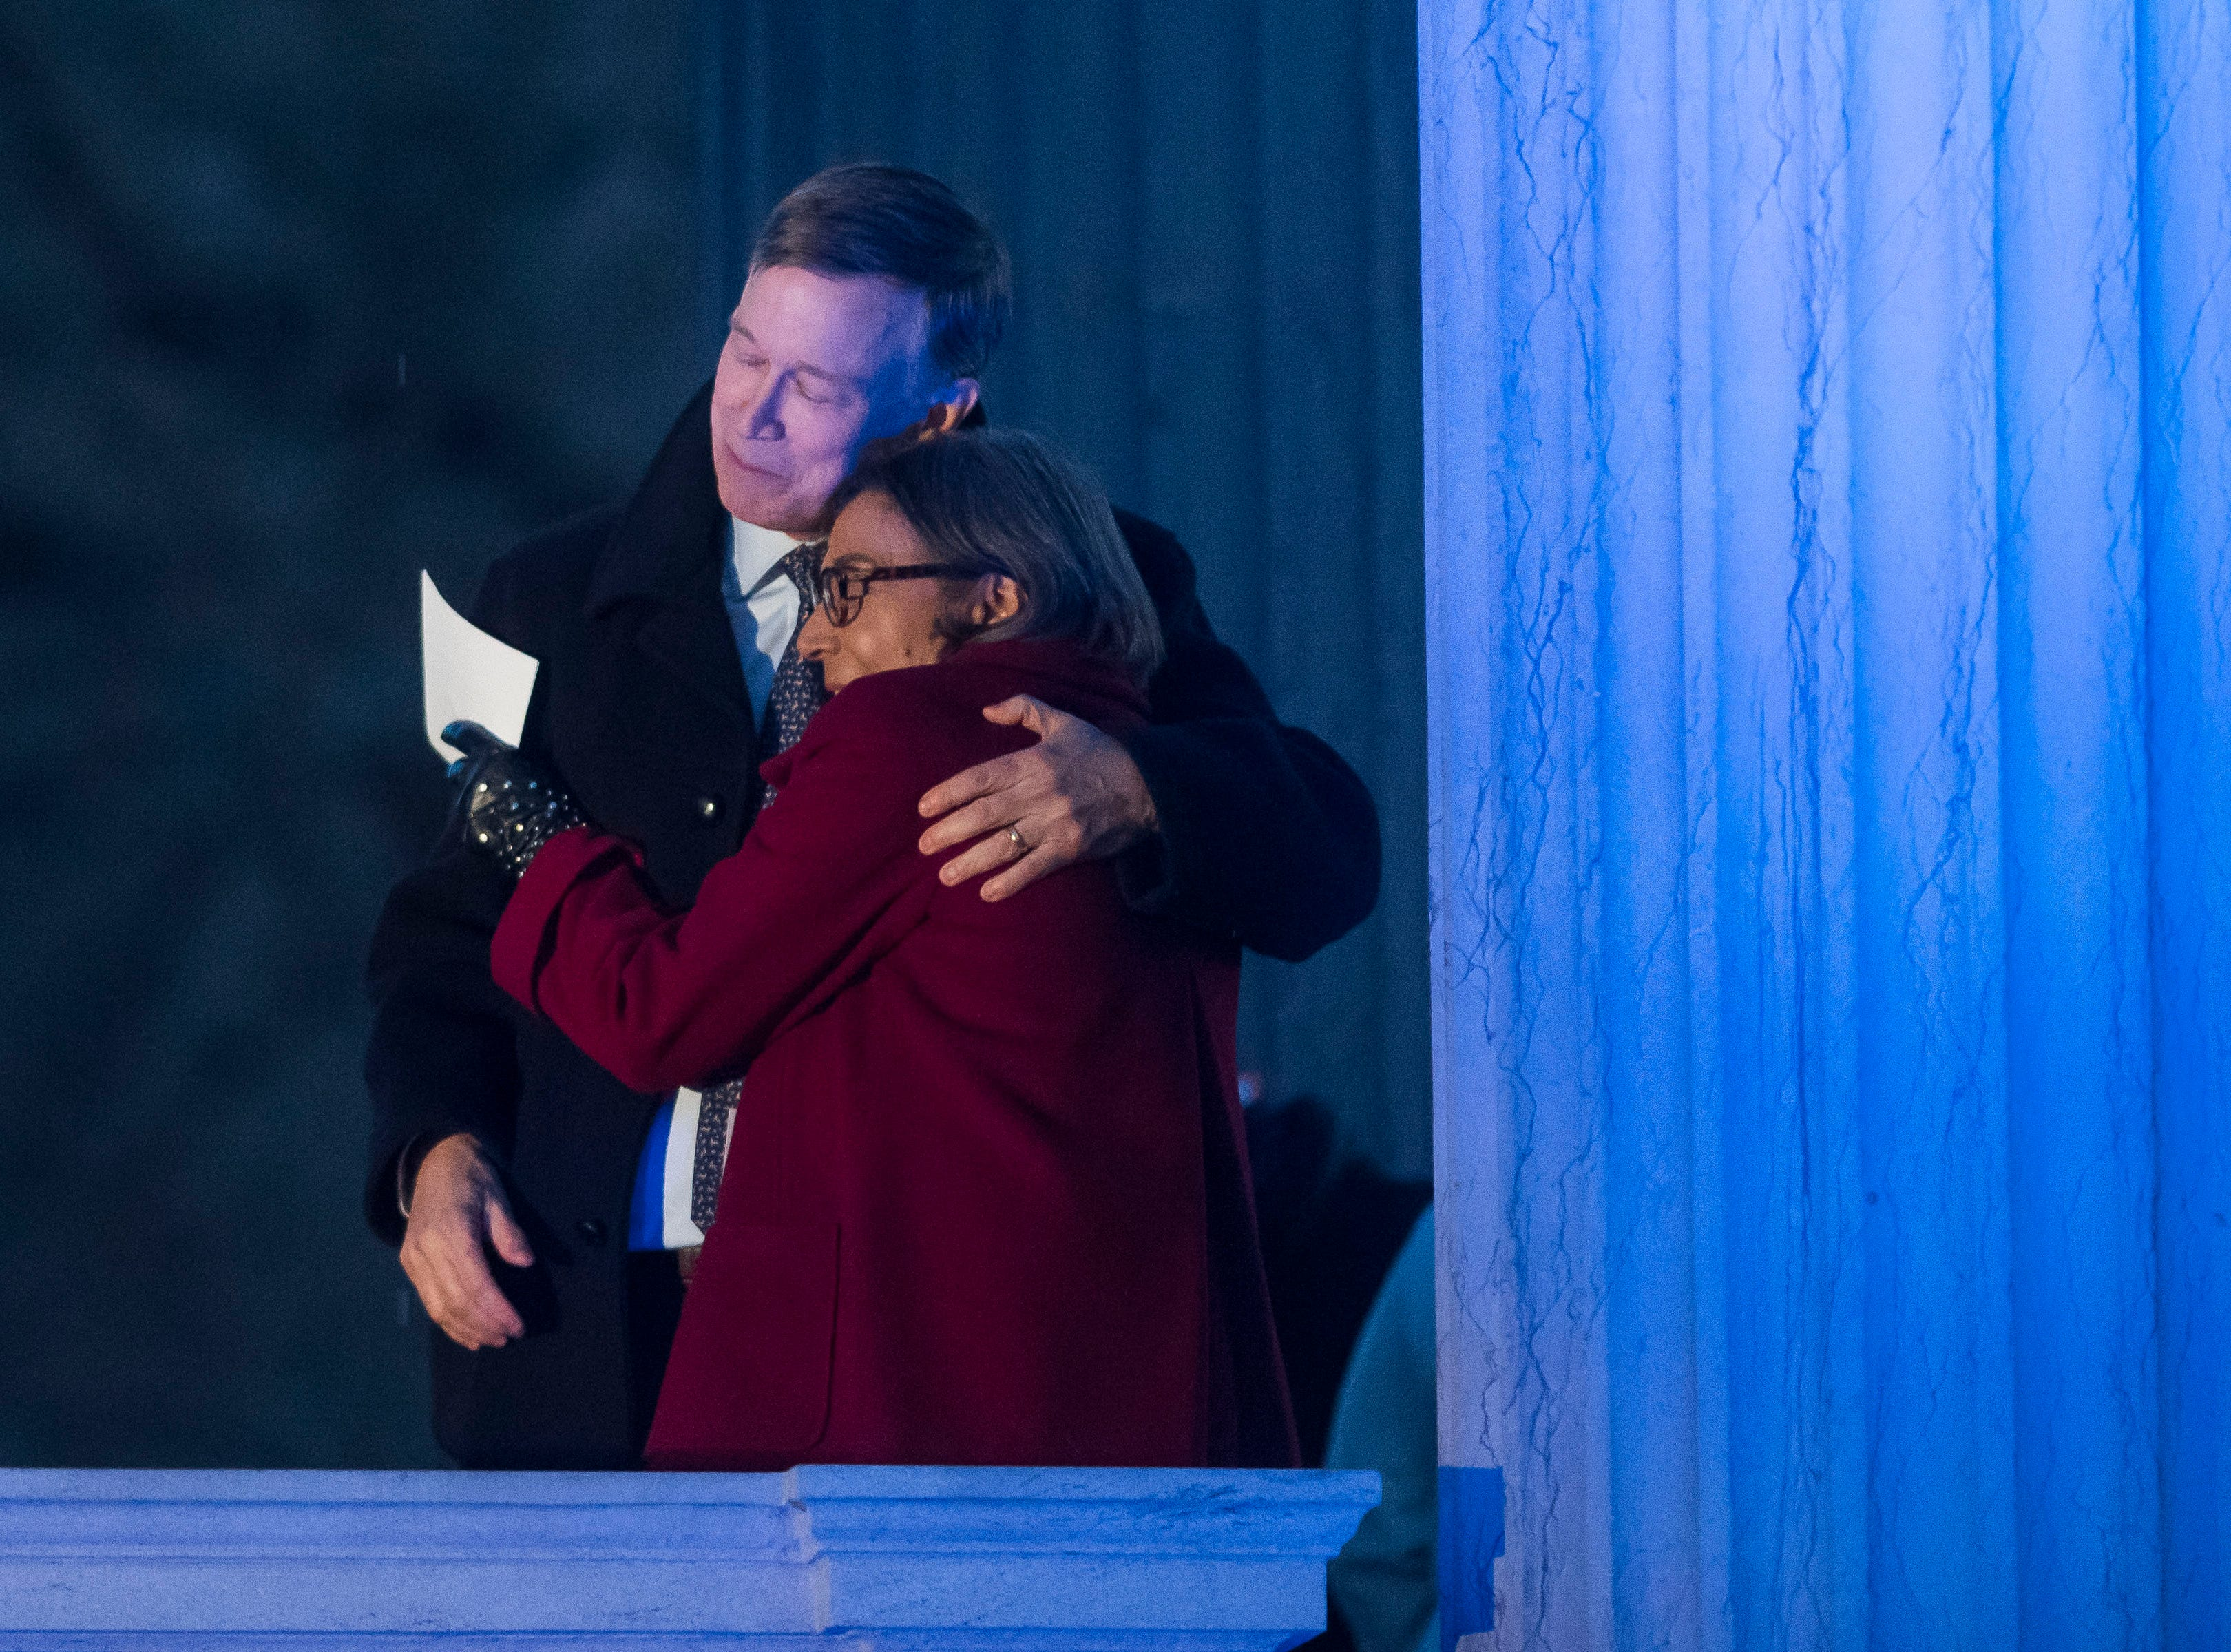 Former State Senate minority leader Reverend Lucia Guzman hugs former Colorado governor John Hickenlooper off-stage during Hickenlooper's presidential campaign kick-off rally on Thursday, March 7, 2019, at the Greek Ampitheatre in Civic Center Park in Denver, Colo.